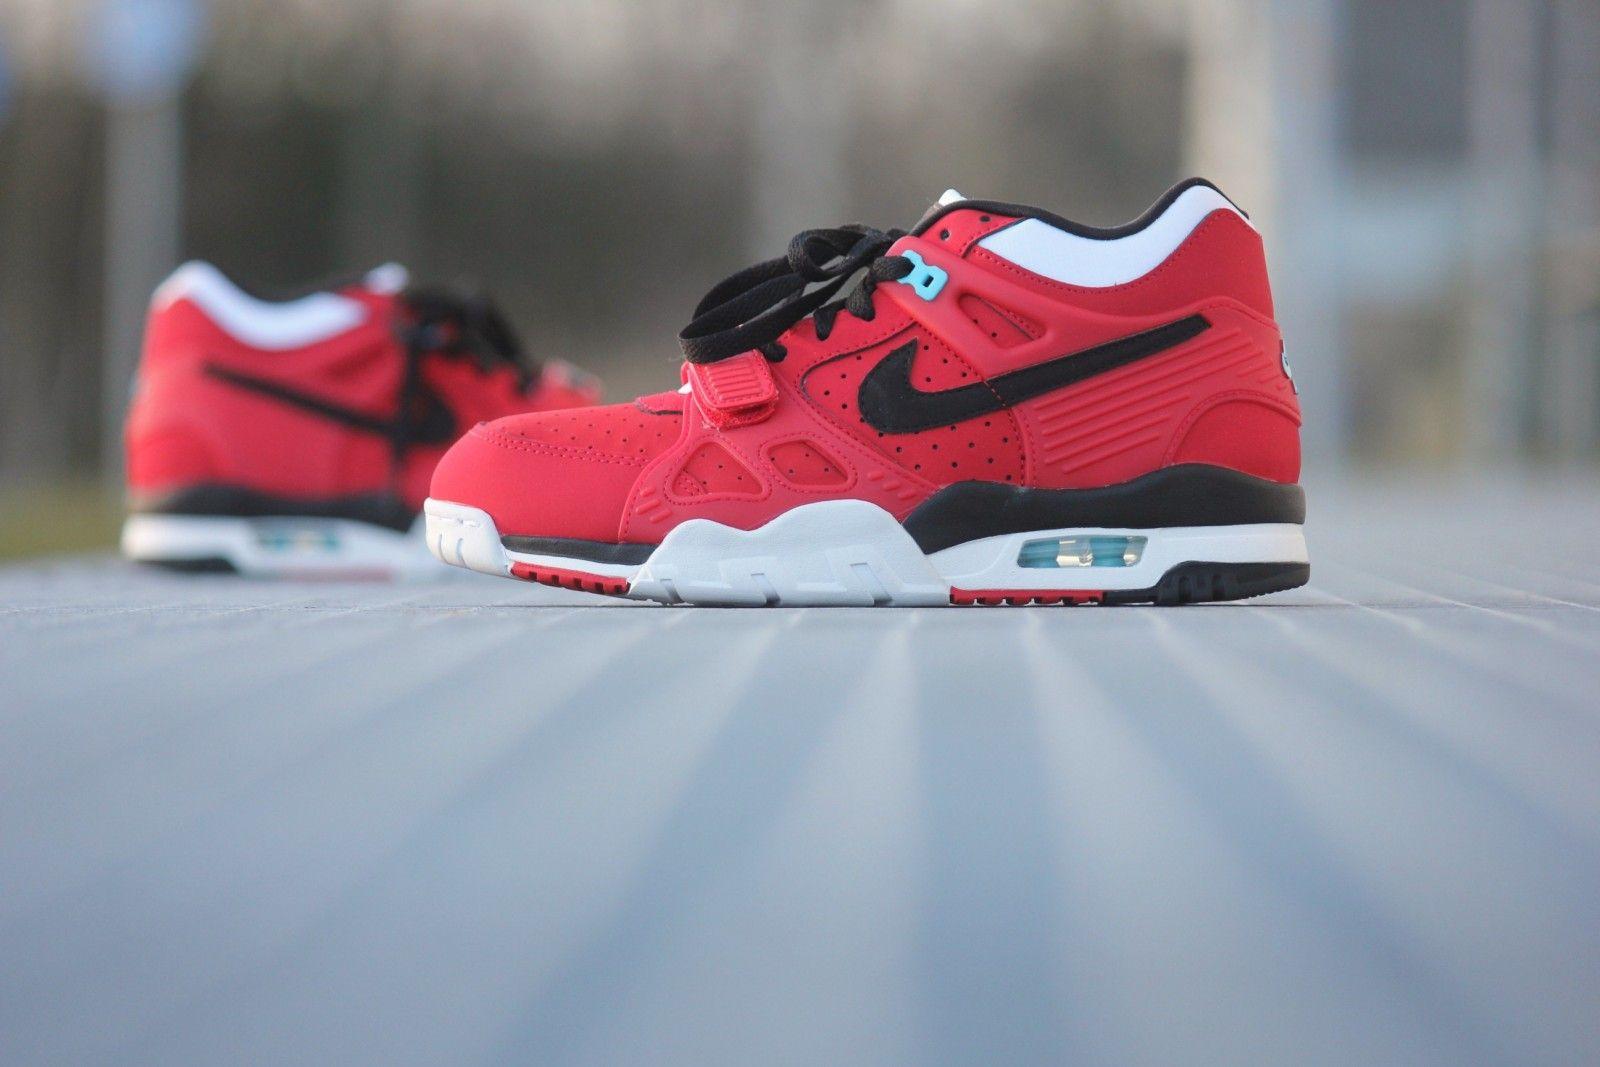 70dcd990f572 Nike Air Trainer 3 University Red - 705426-600